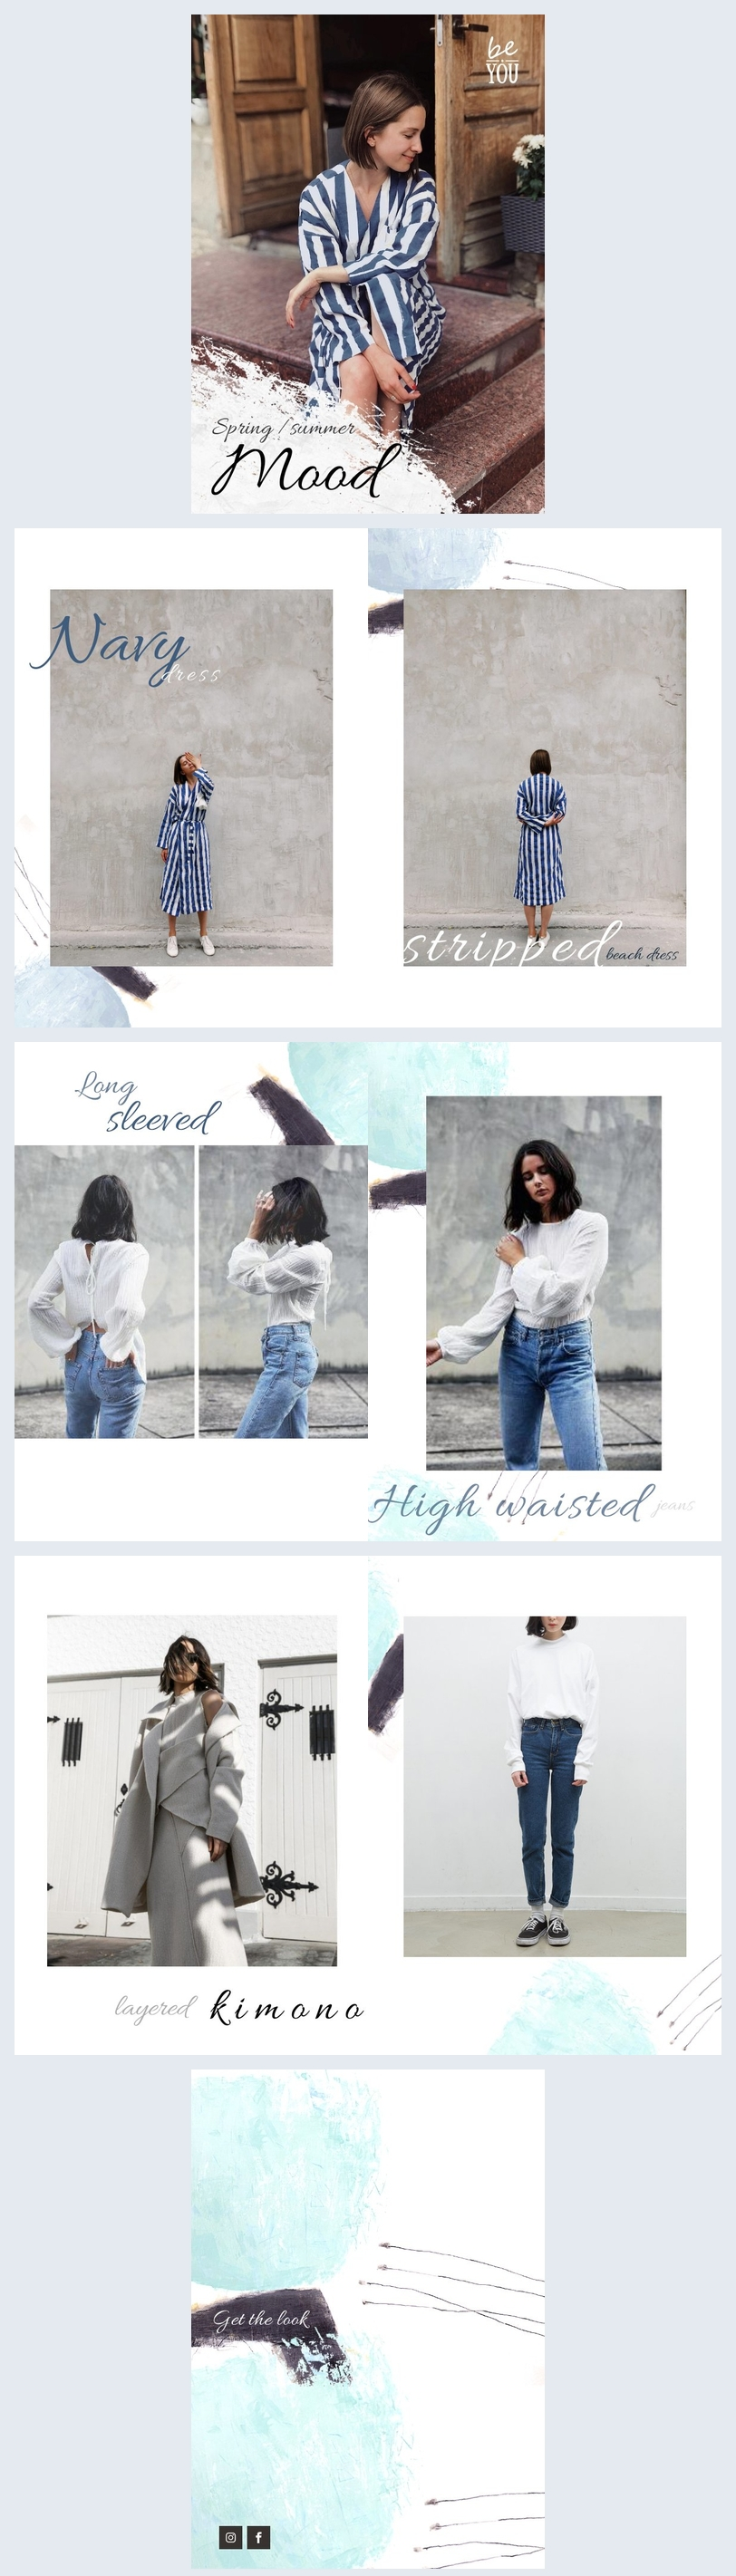 Fashion Lookbook Template & Design